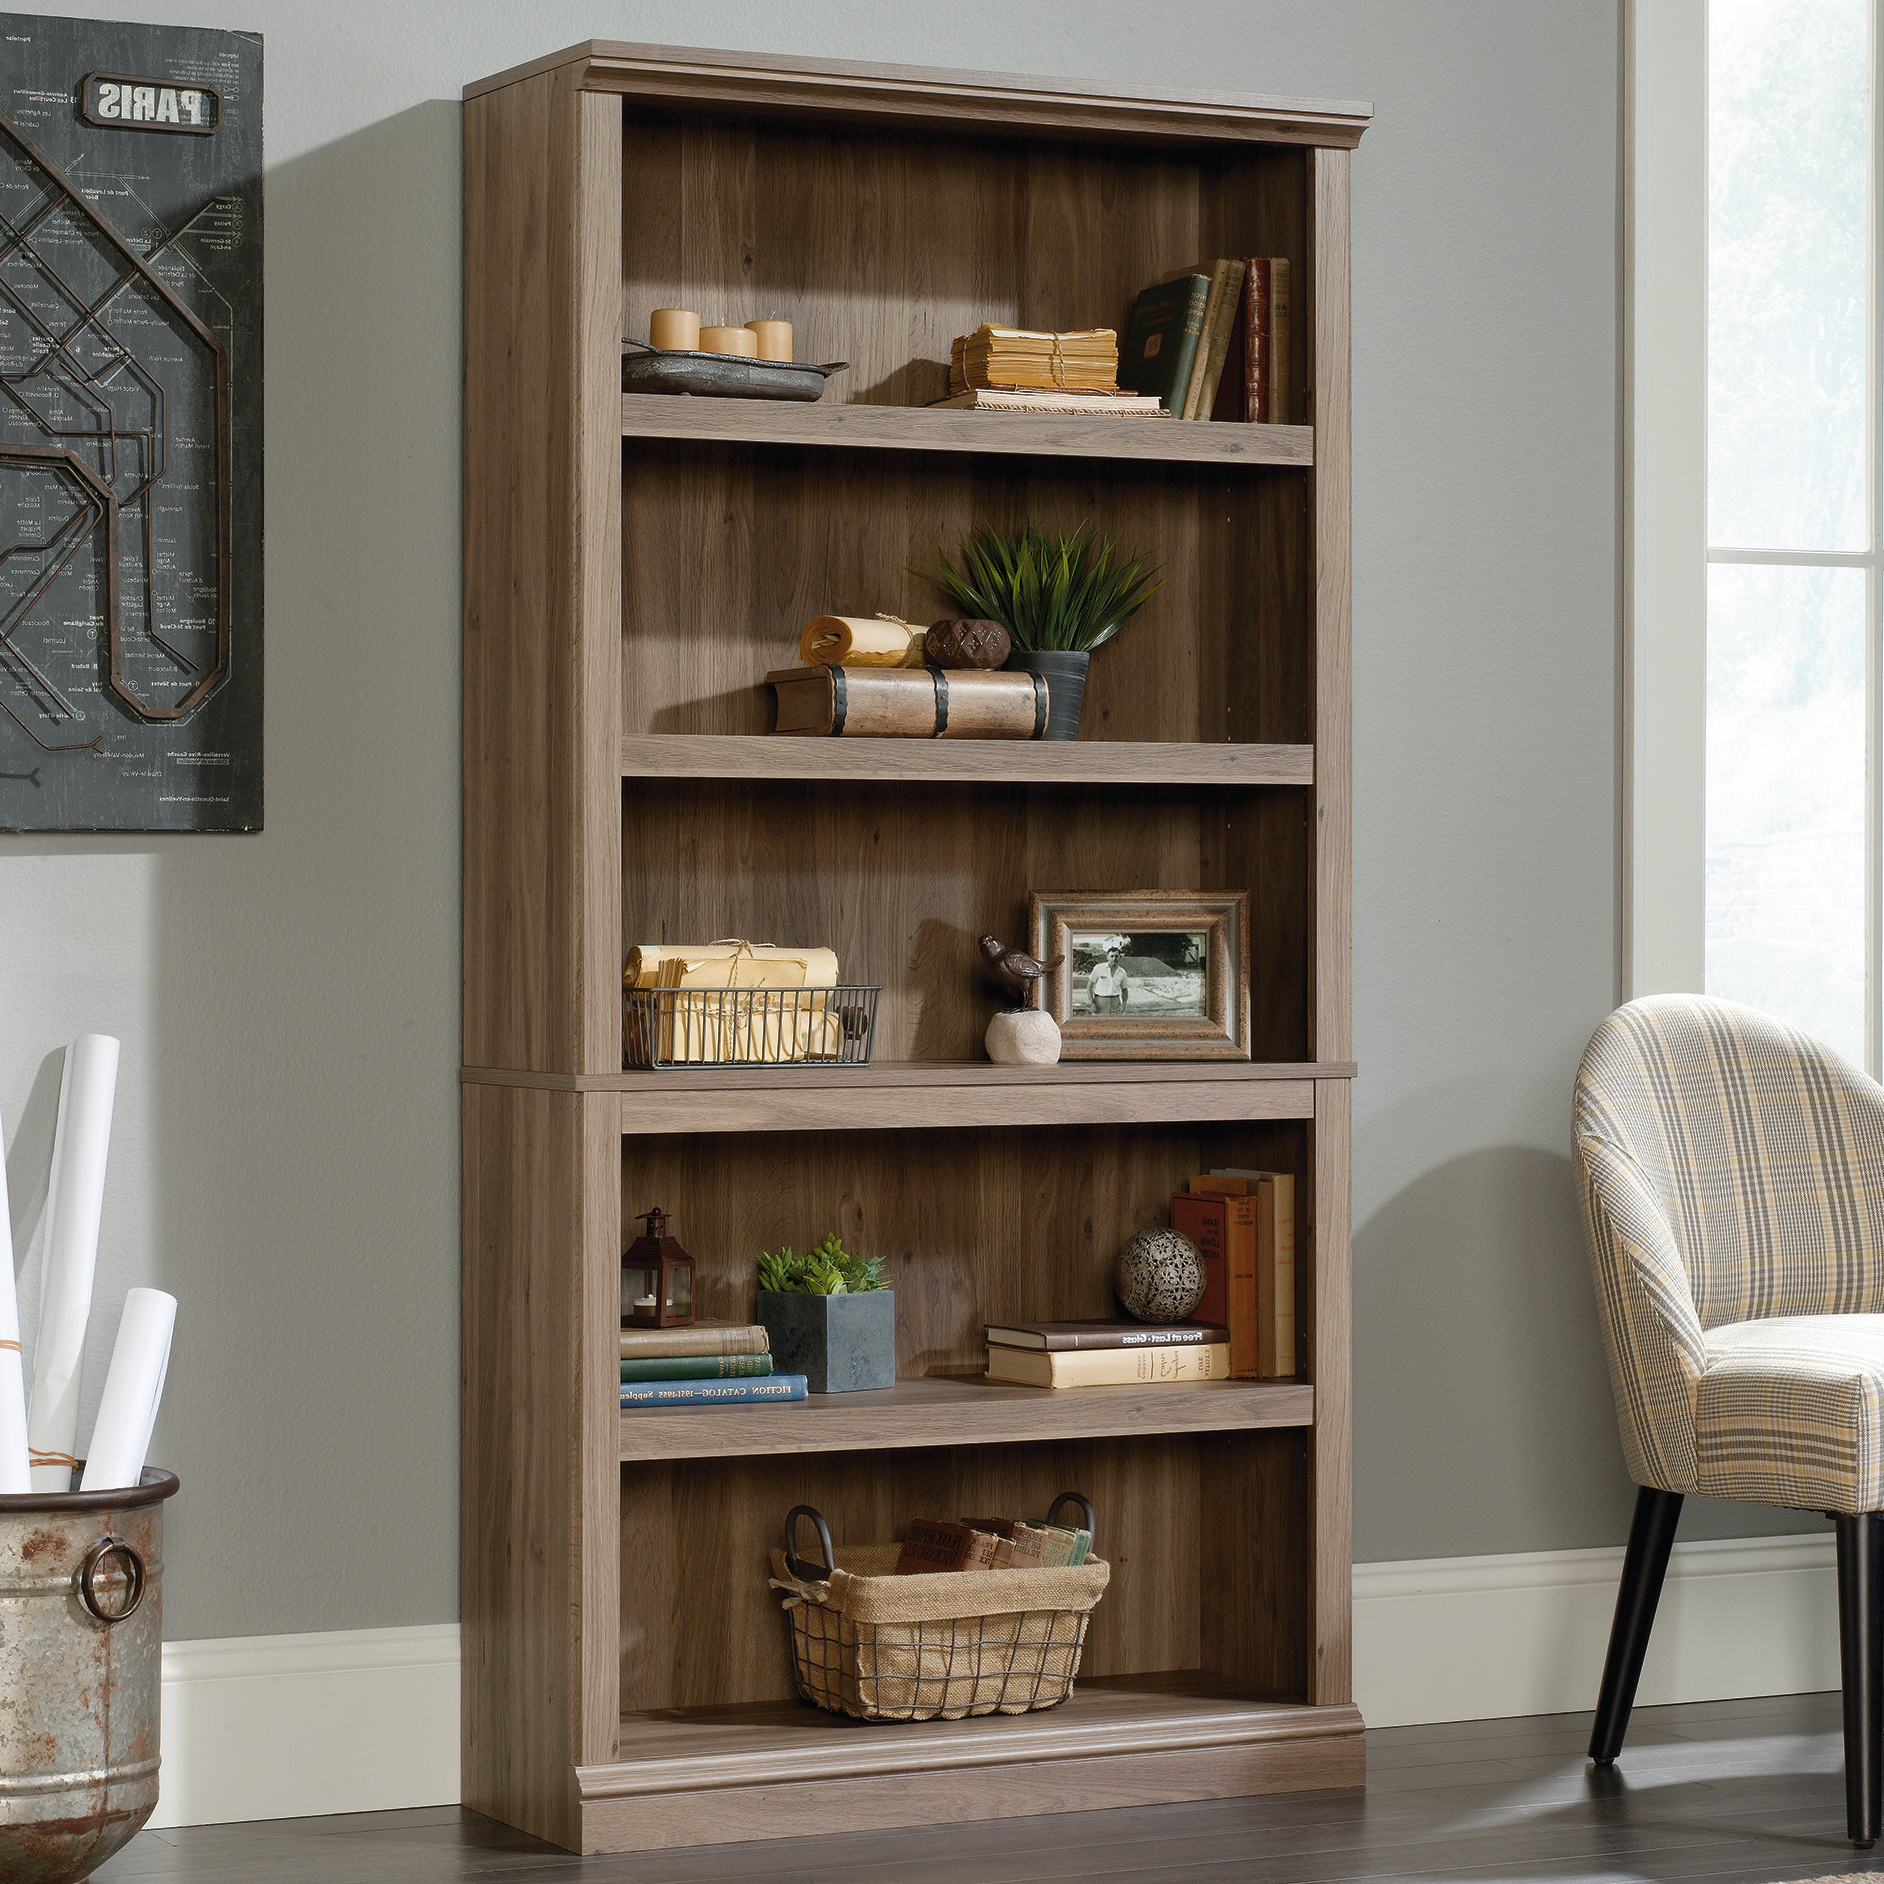 Abigail Standard Bookcase In Fashionable Orford Standard Bookcases (View 13 of 20)